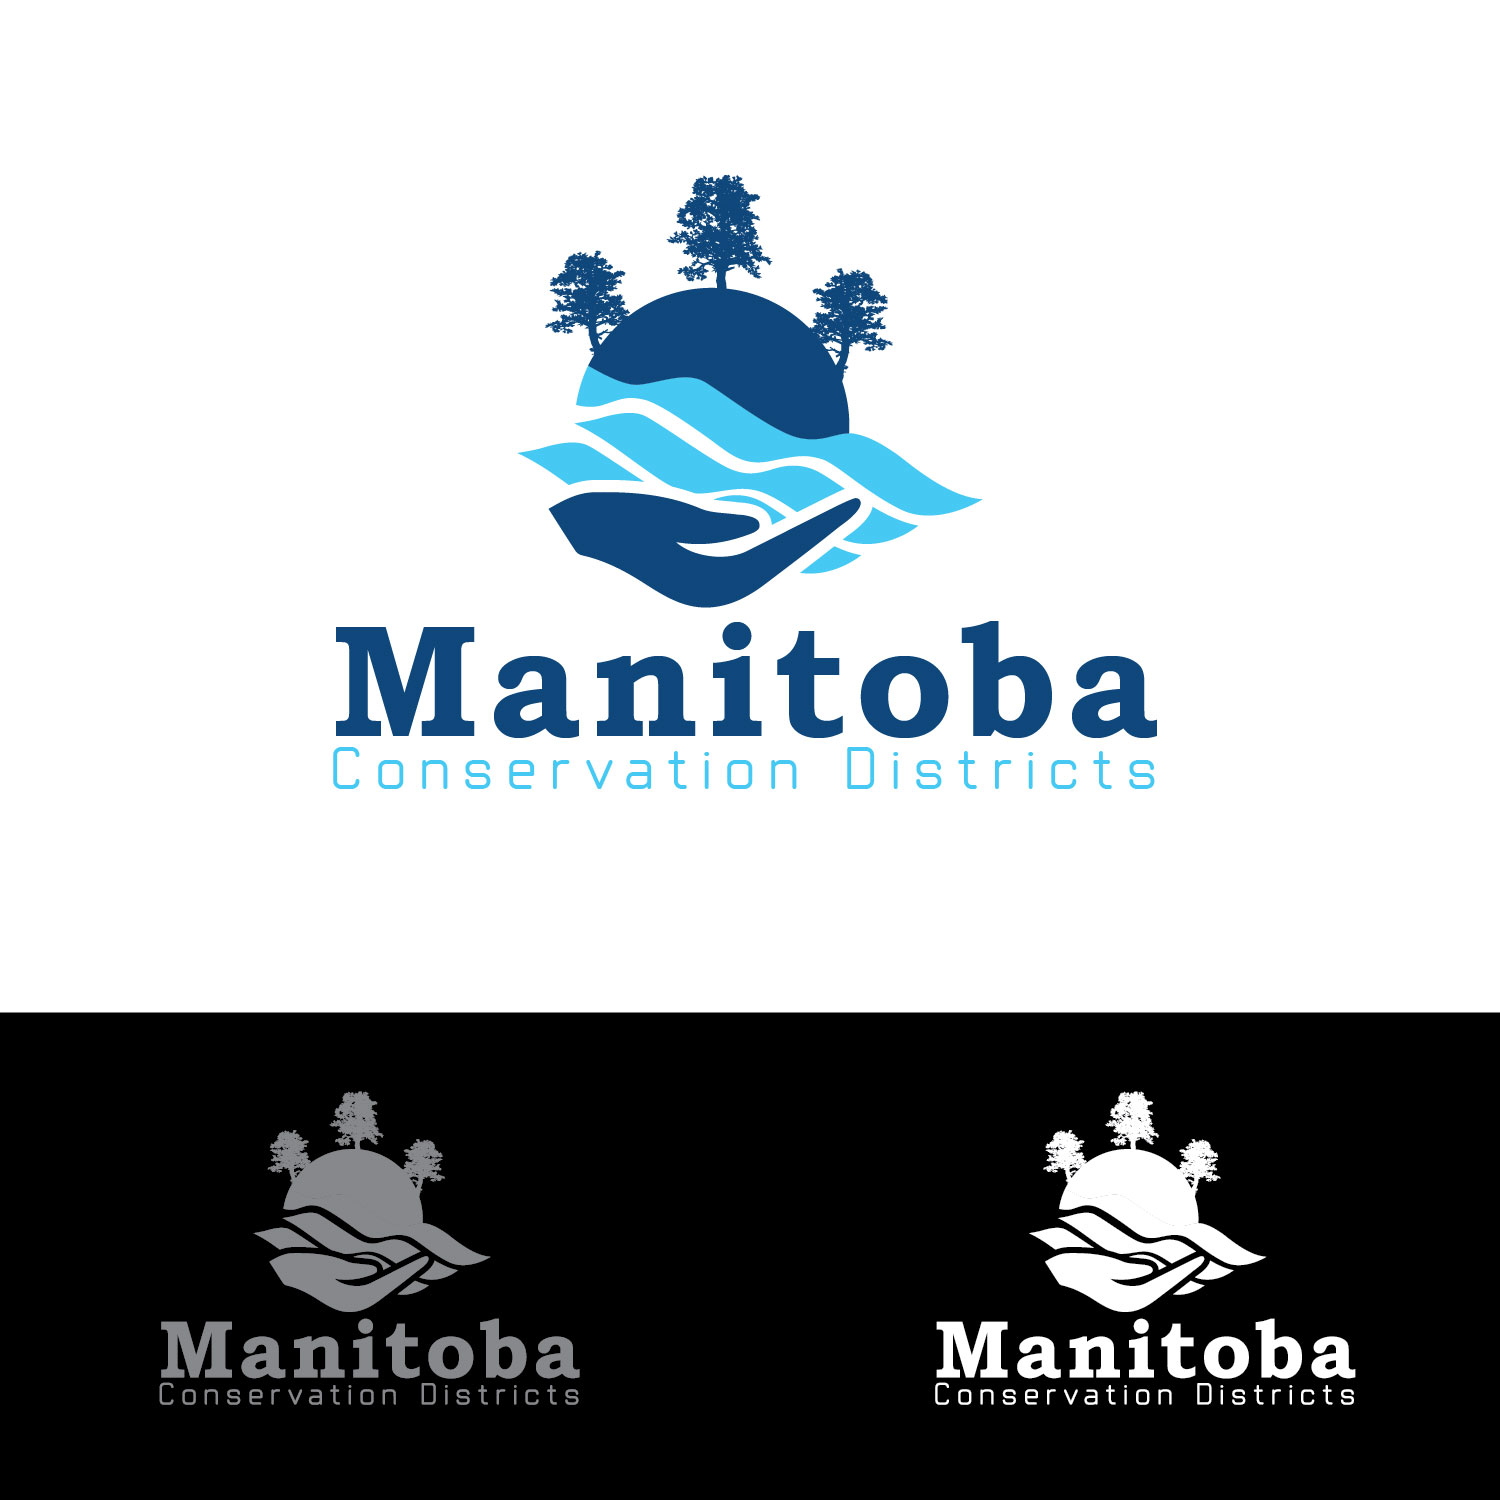 Logo Design by lagalag - Entry No. 4 in the Logo Design Contest Manitoba Conservation Districts Logo Design.